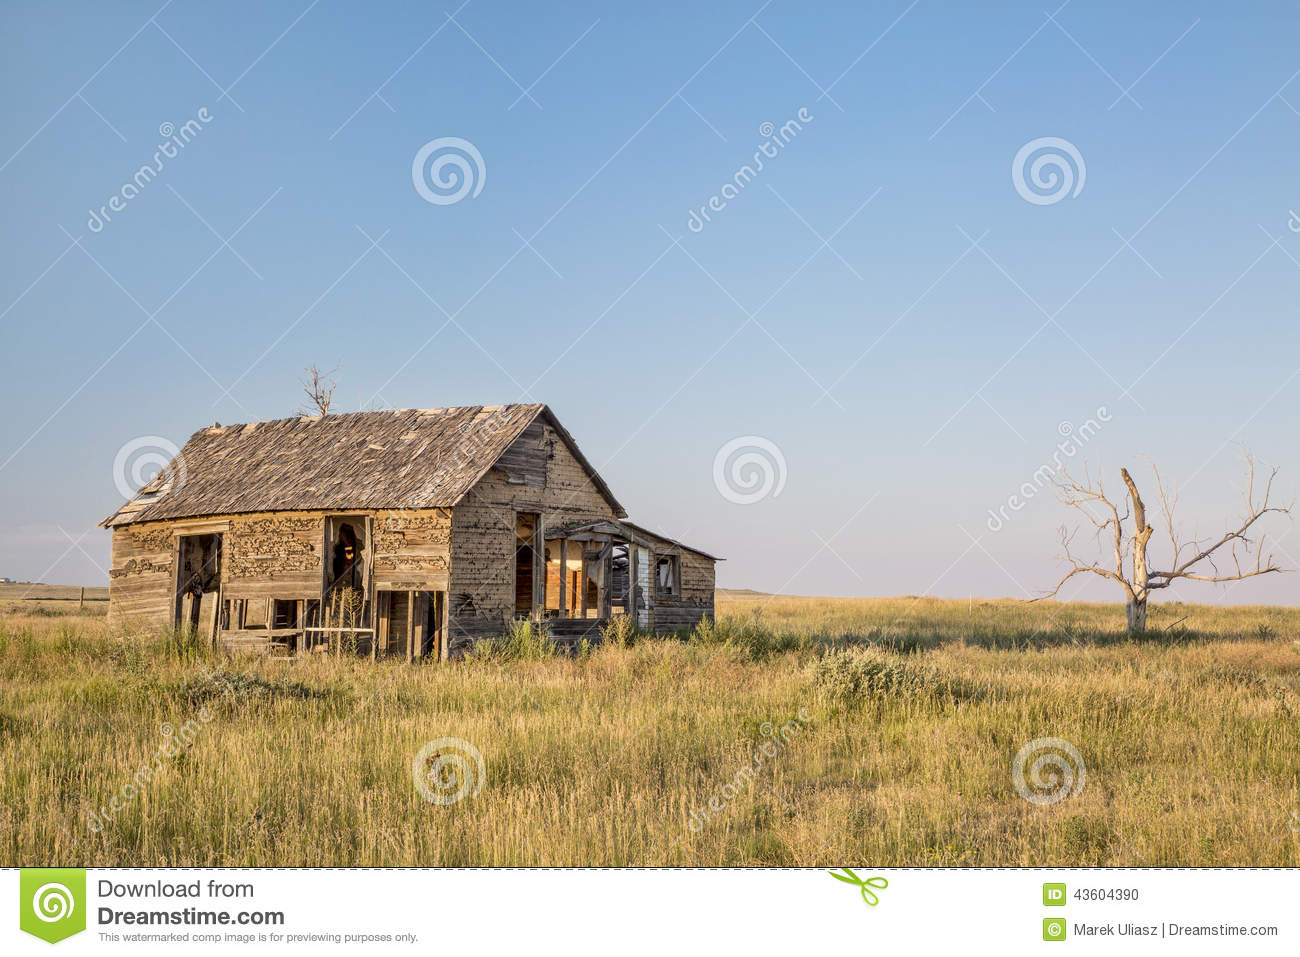 Stock Photo Old Homestead Prairie Abandoned Eastern Colorado Near Galeton Sunset Light Image43604390 in addition Royalty Free Stock Photo Vintage Italian Front Door Image13579785 besides Stock Photo Wooden Old Door Vintage Background Texture Image31954510 also Salman Khan House Pictures also Royalty Free Stock Image American Country Image23937876. on old time farmhouse plans